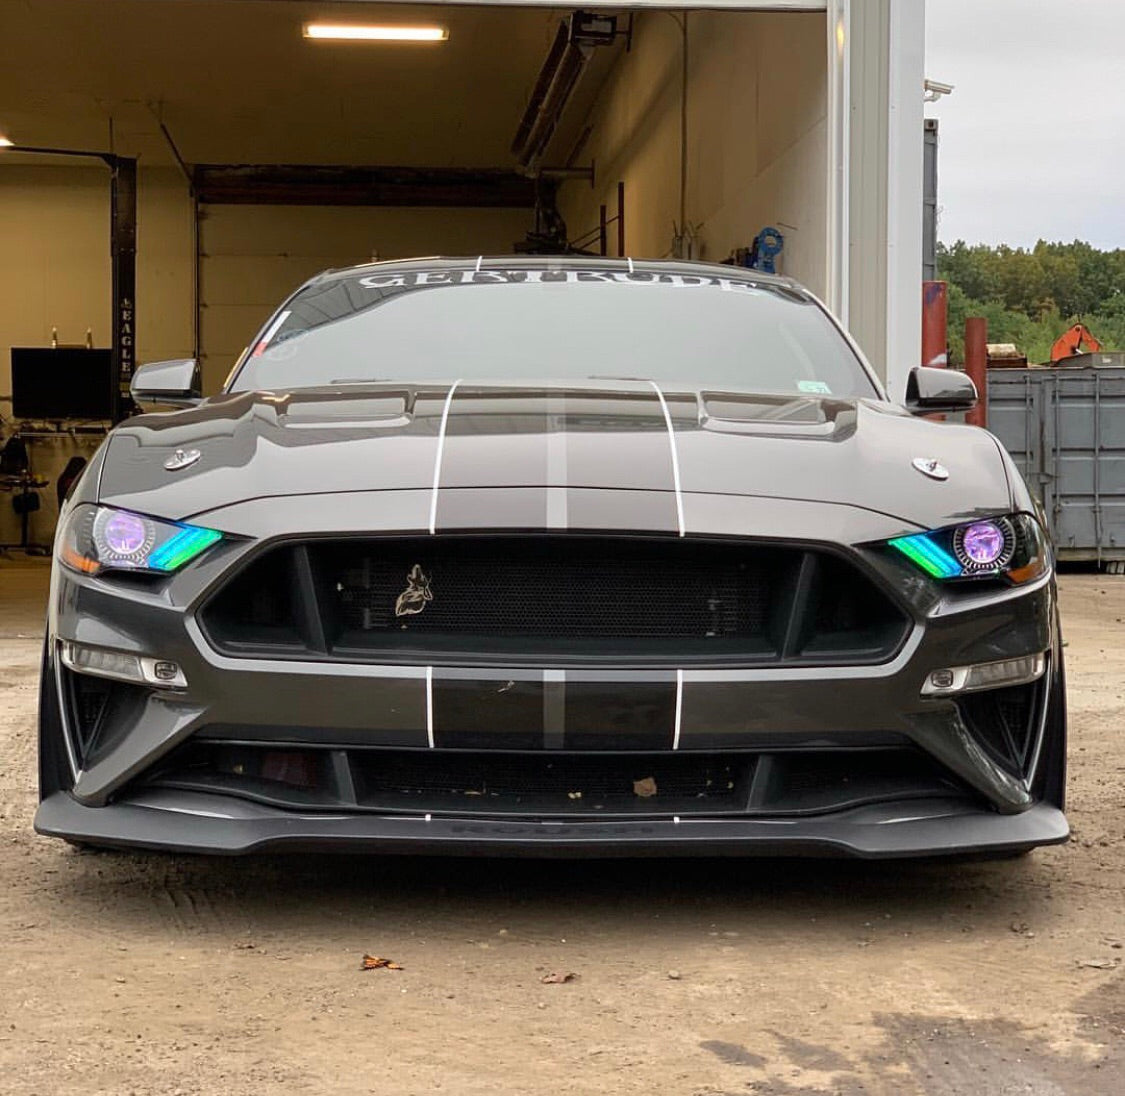 2018 2020 ford mustang rgbw color chasing rgbw a led drl boards autoledtech com 2018 2020 ford mustang rgbw color chasing rgbw a led drl boards